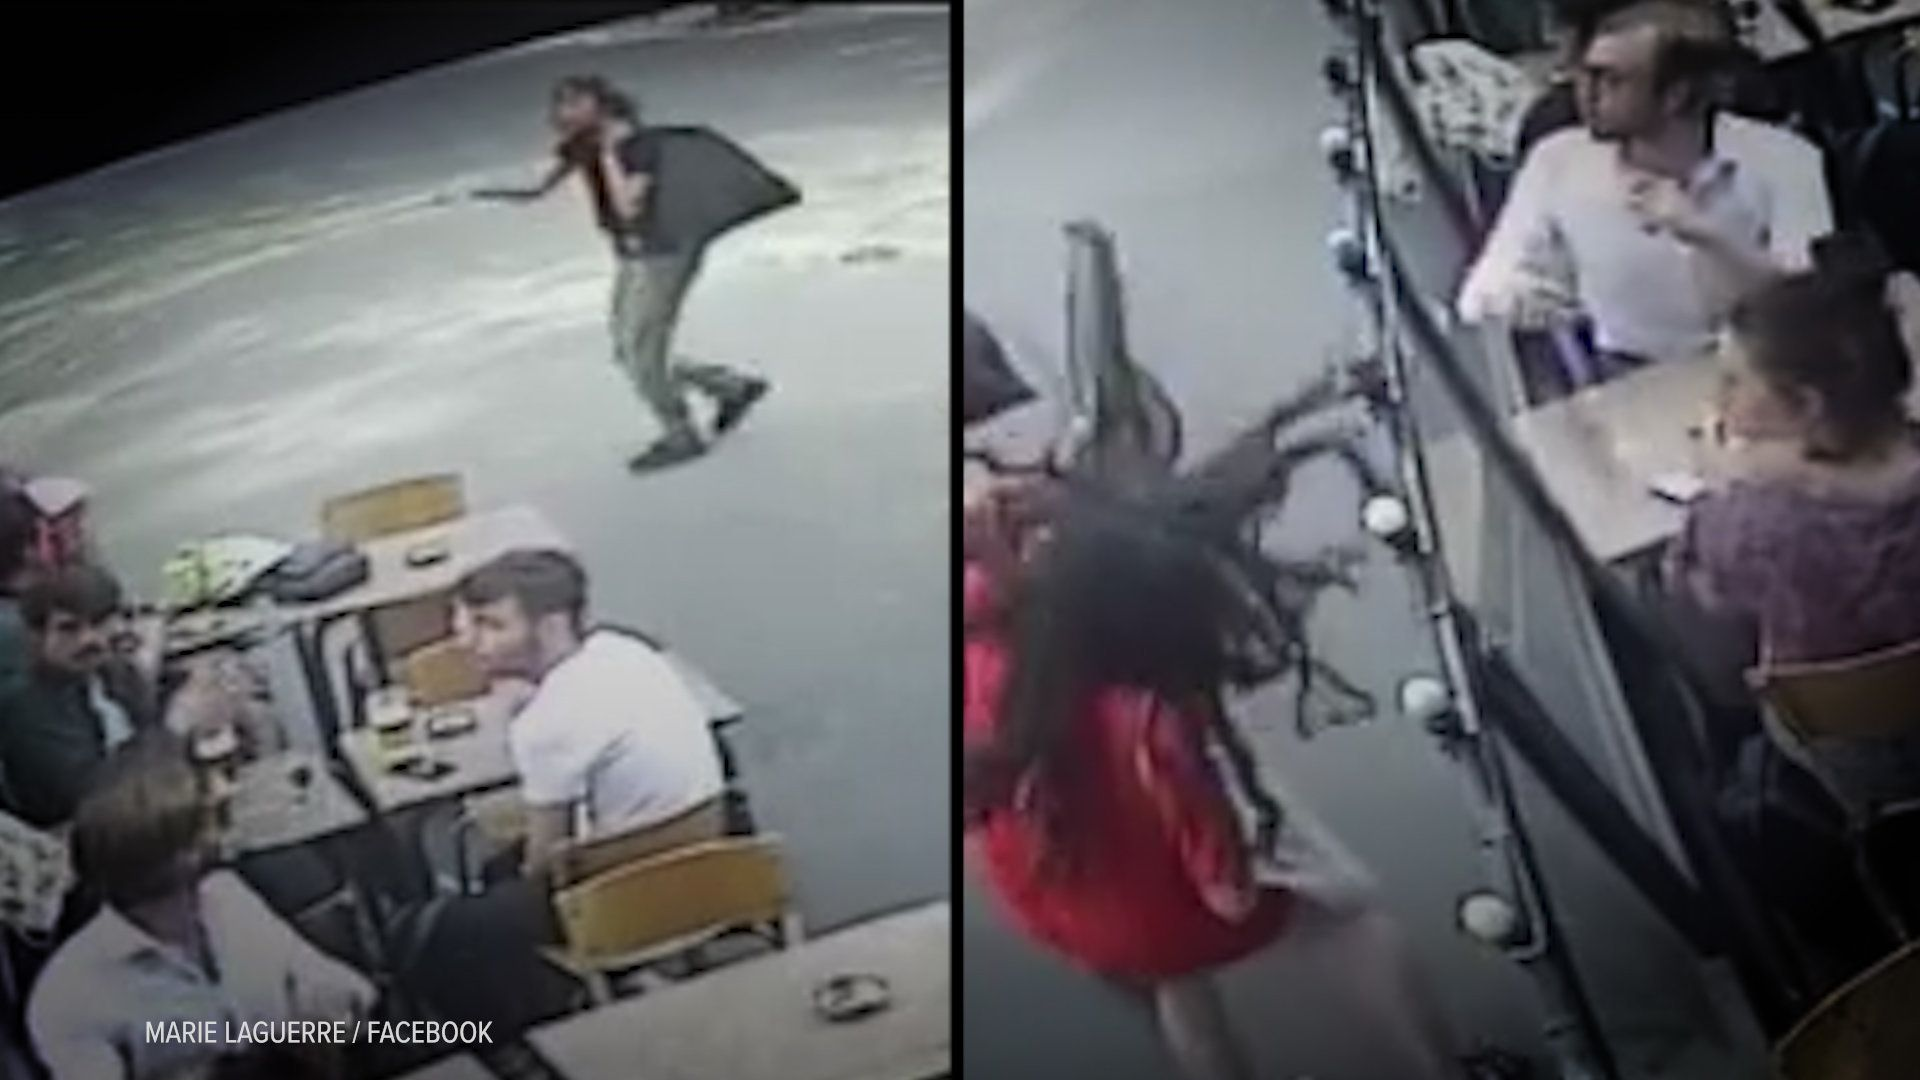 Street Harasser's Violent Attack Prompts Calls For Sexual Misconduct Crackdown